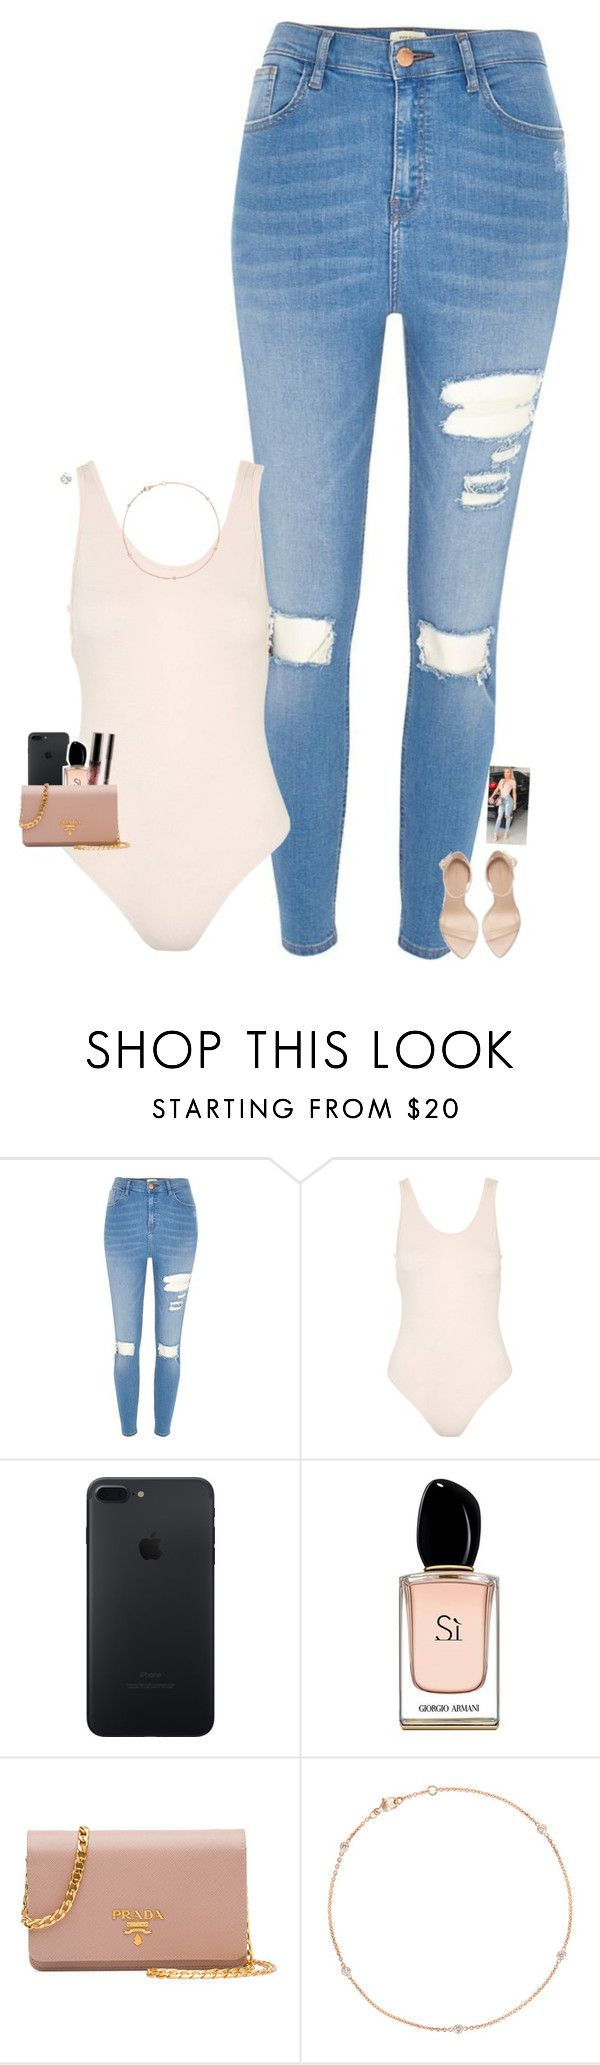 """Tranny hembrow inspired 😻(Kinda)"" by raee590 ❤ liked on Polyvore featuring River Island, Topshop, Armani Beauty and Prada"